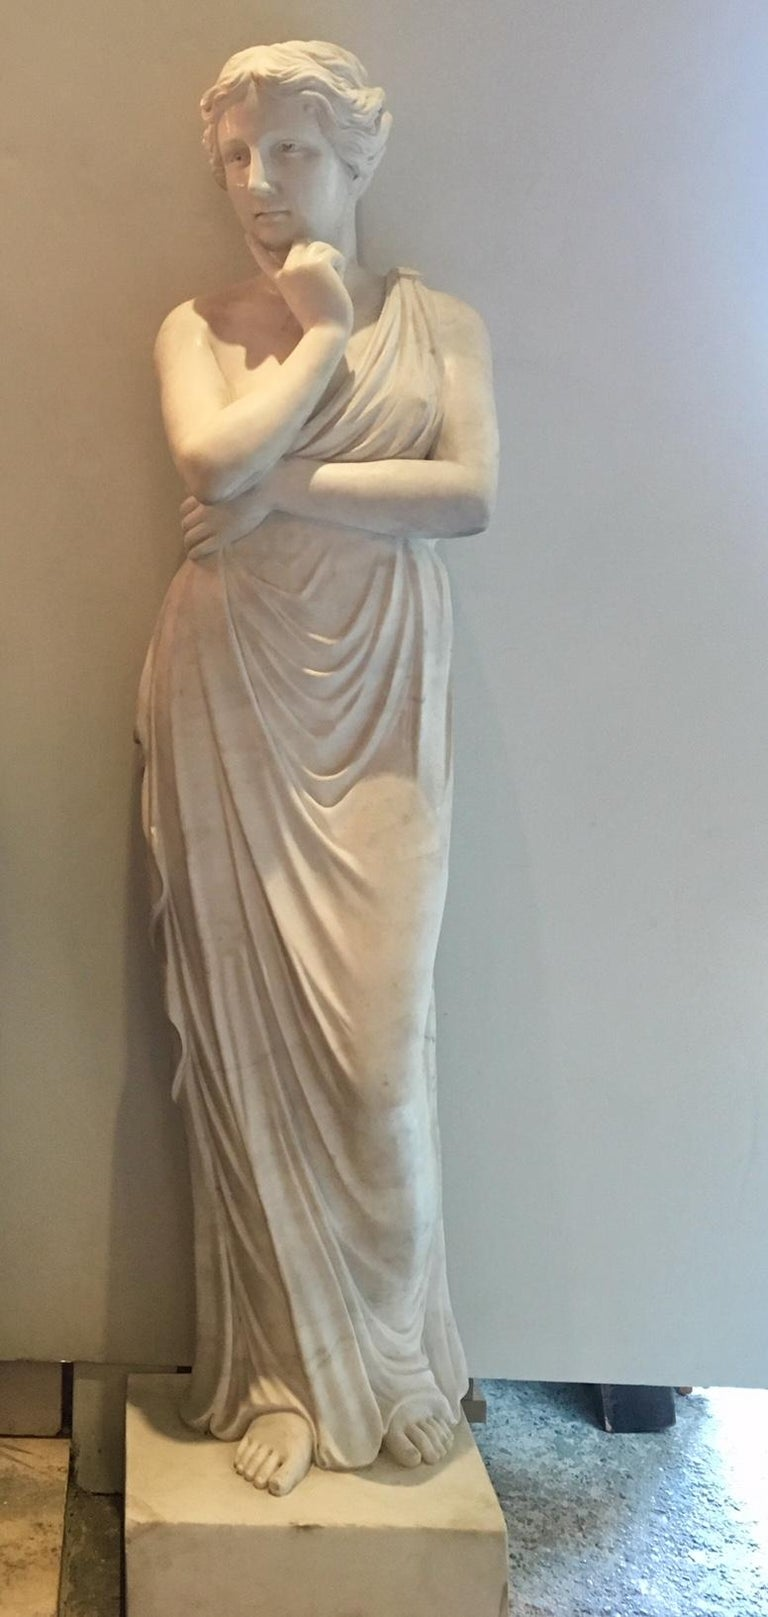 Beautiful hand-carved Venus sculpture after Greek and Roman examples. Made in Italy in the 20th century from high quality bright white Carrara marble. The sculpture is in a very good condition. 190 cm in height (including square basement), 40 cm